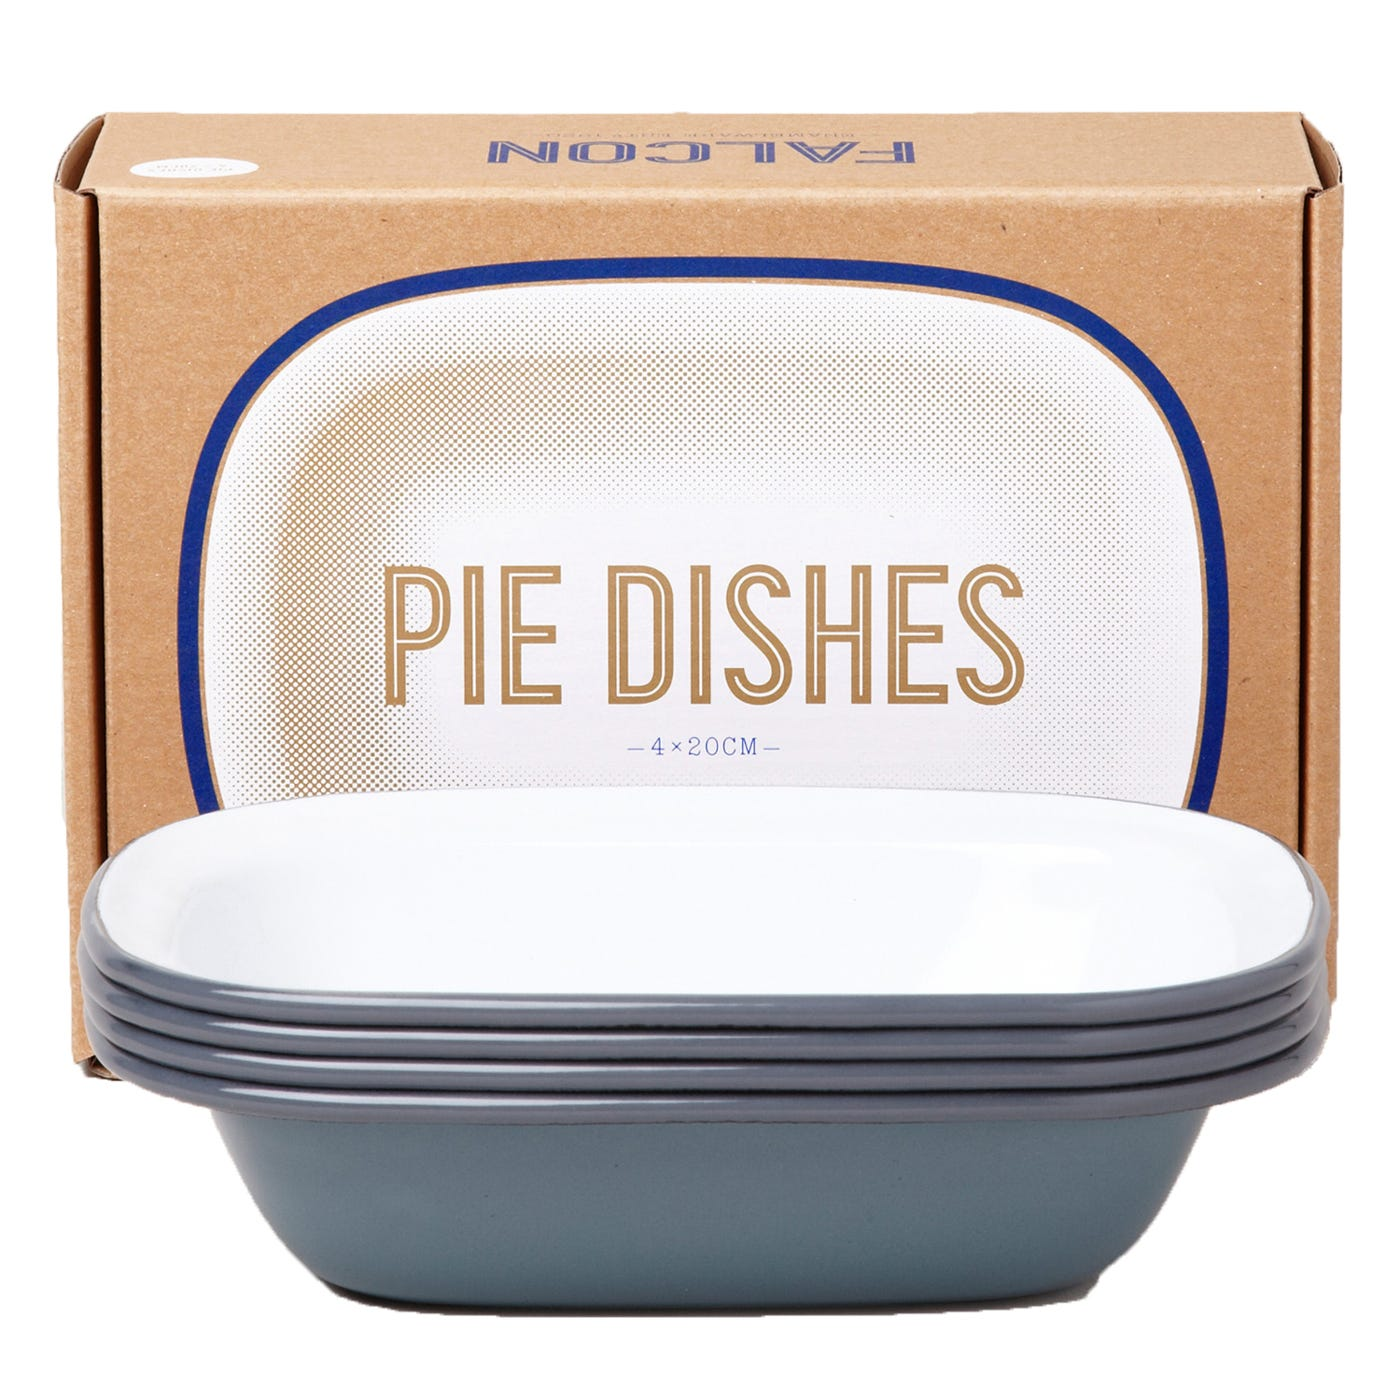 Falcon Pigeon Grey Small Pie Dishes Set Of 4